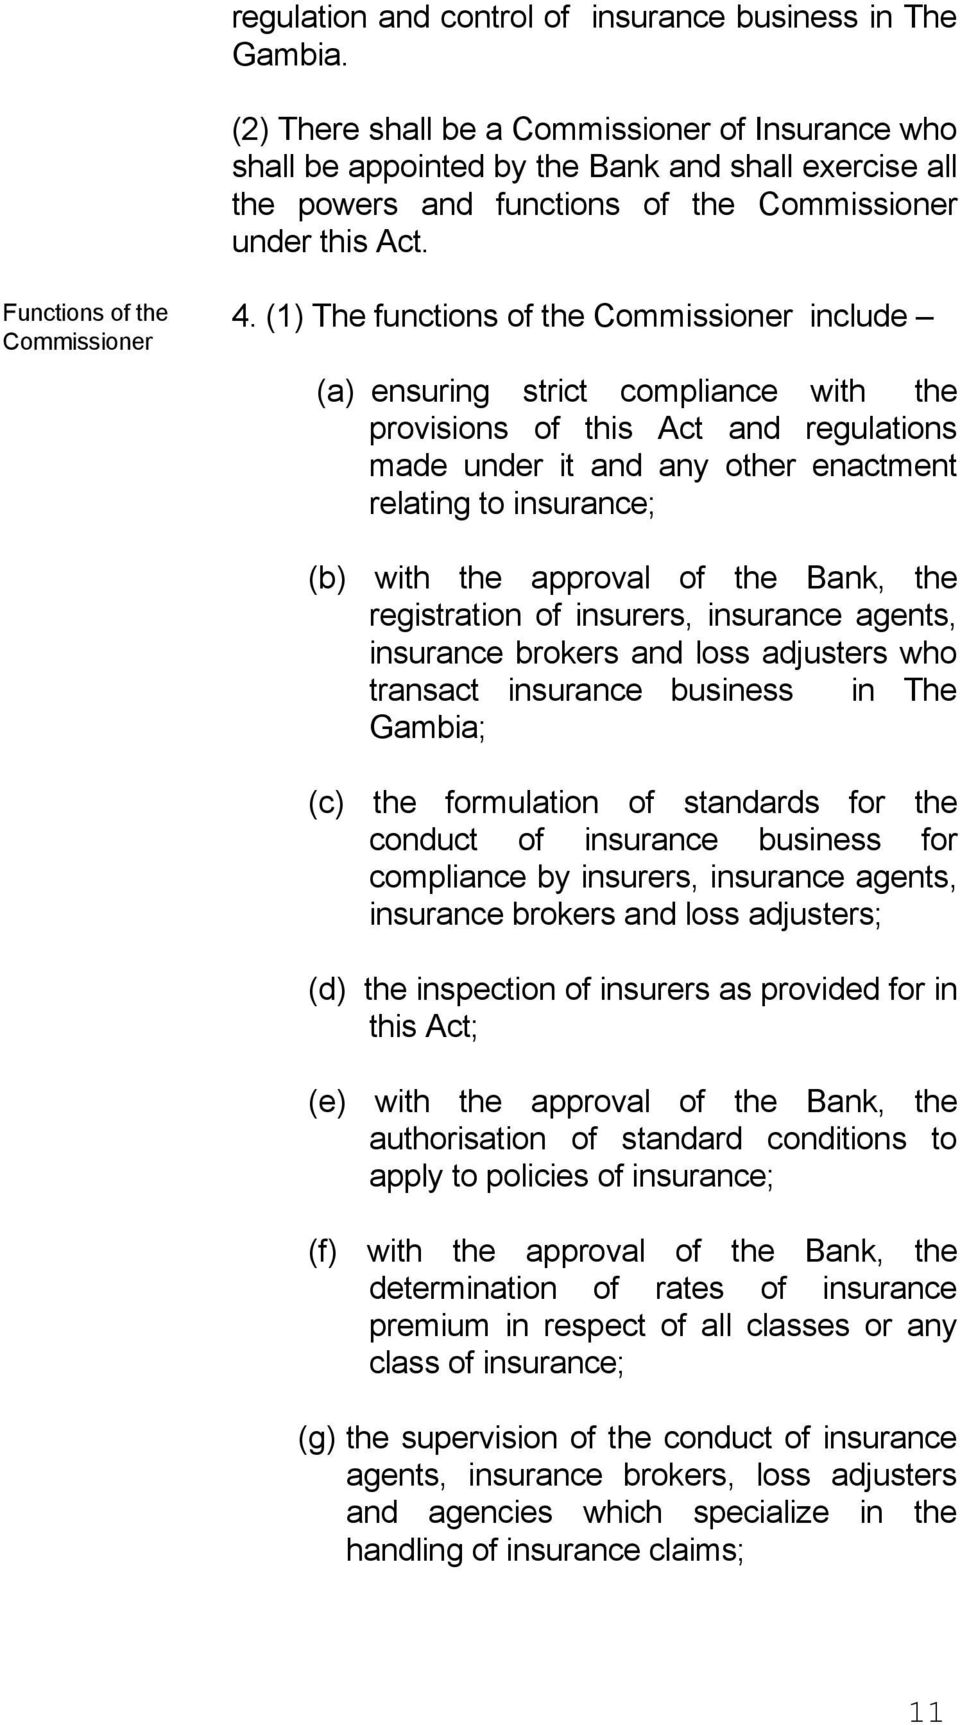 (1) The functions of the Commissioner include (a) ensuring strict compliance with the provisions of this Act and regulations made under it and any other enactment relating to insurance; (b) with the